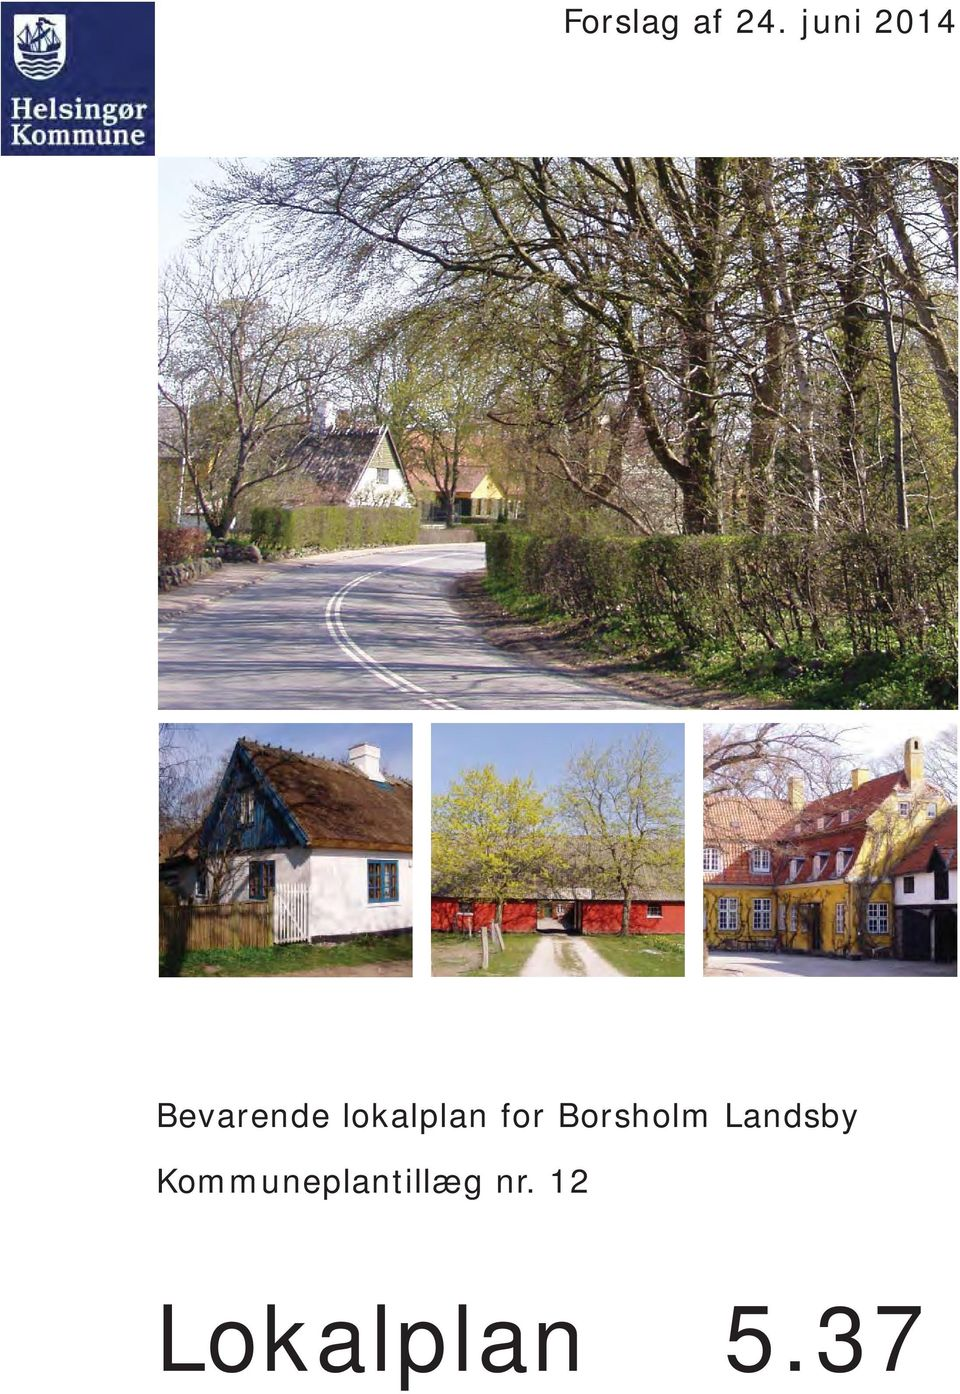 lokalplan for Borsholm